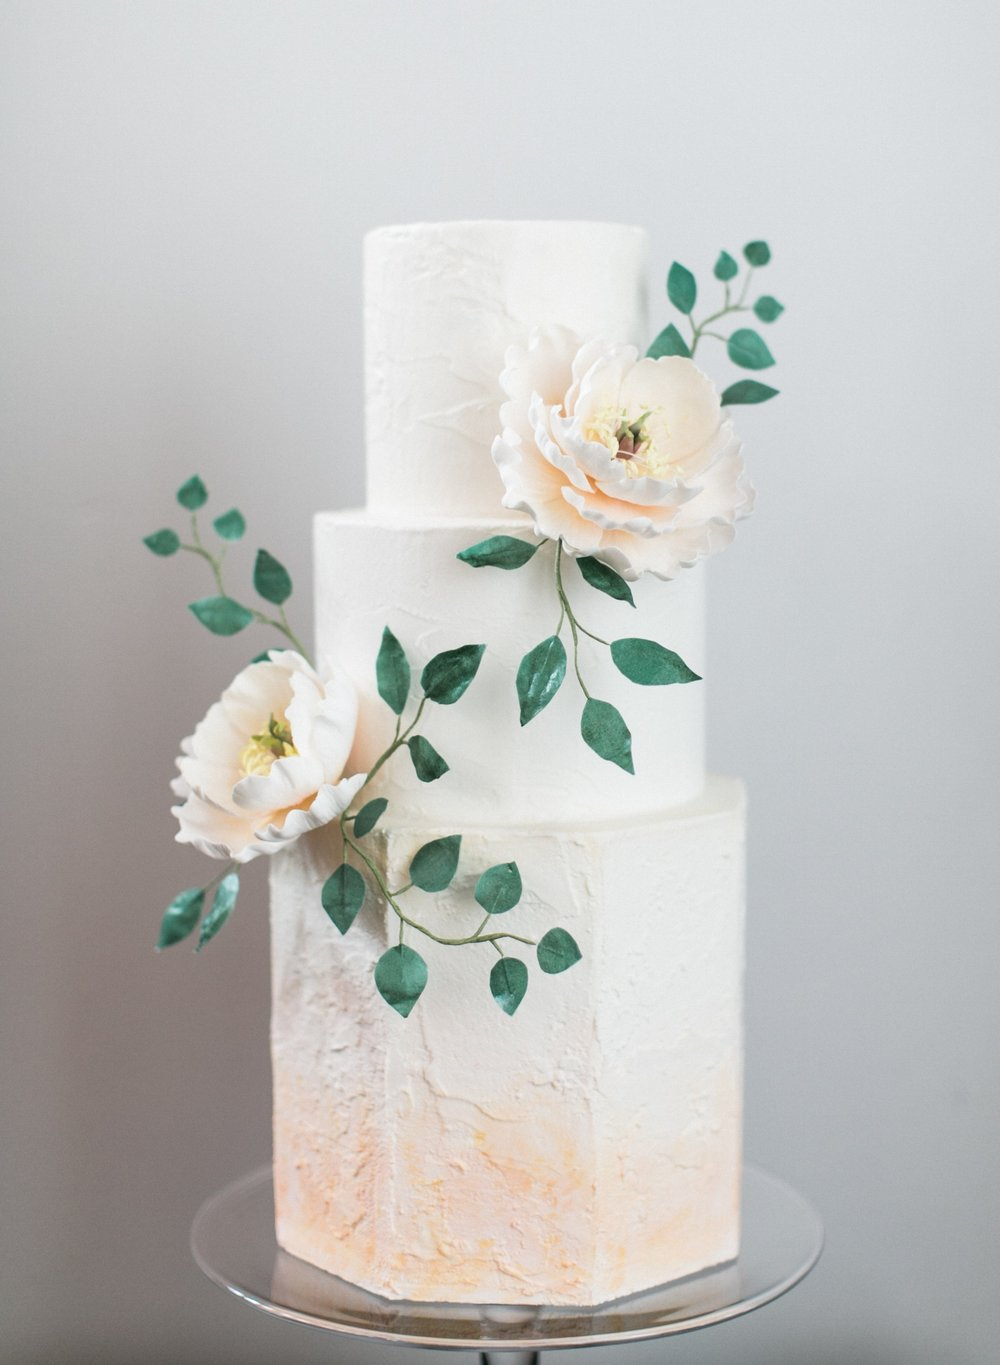 Watercolor cake with sugar flowers - photo by Matthew Land Studios